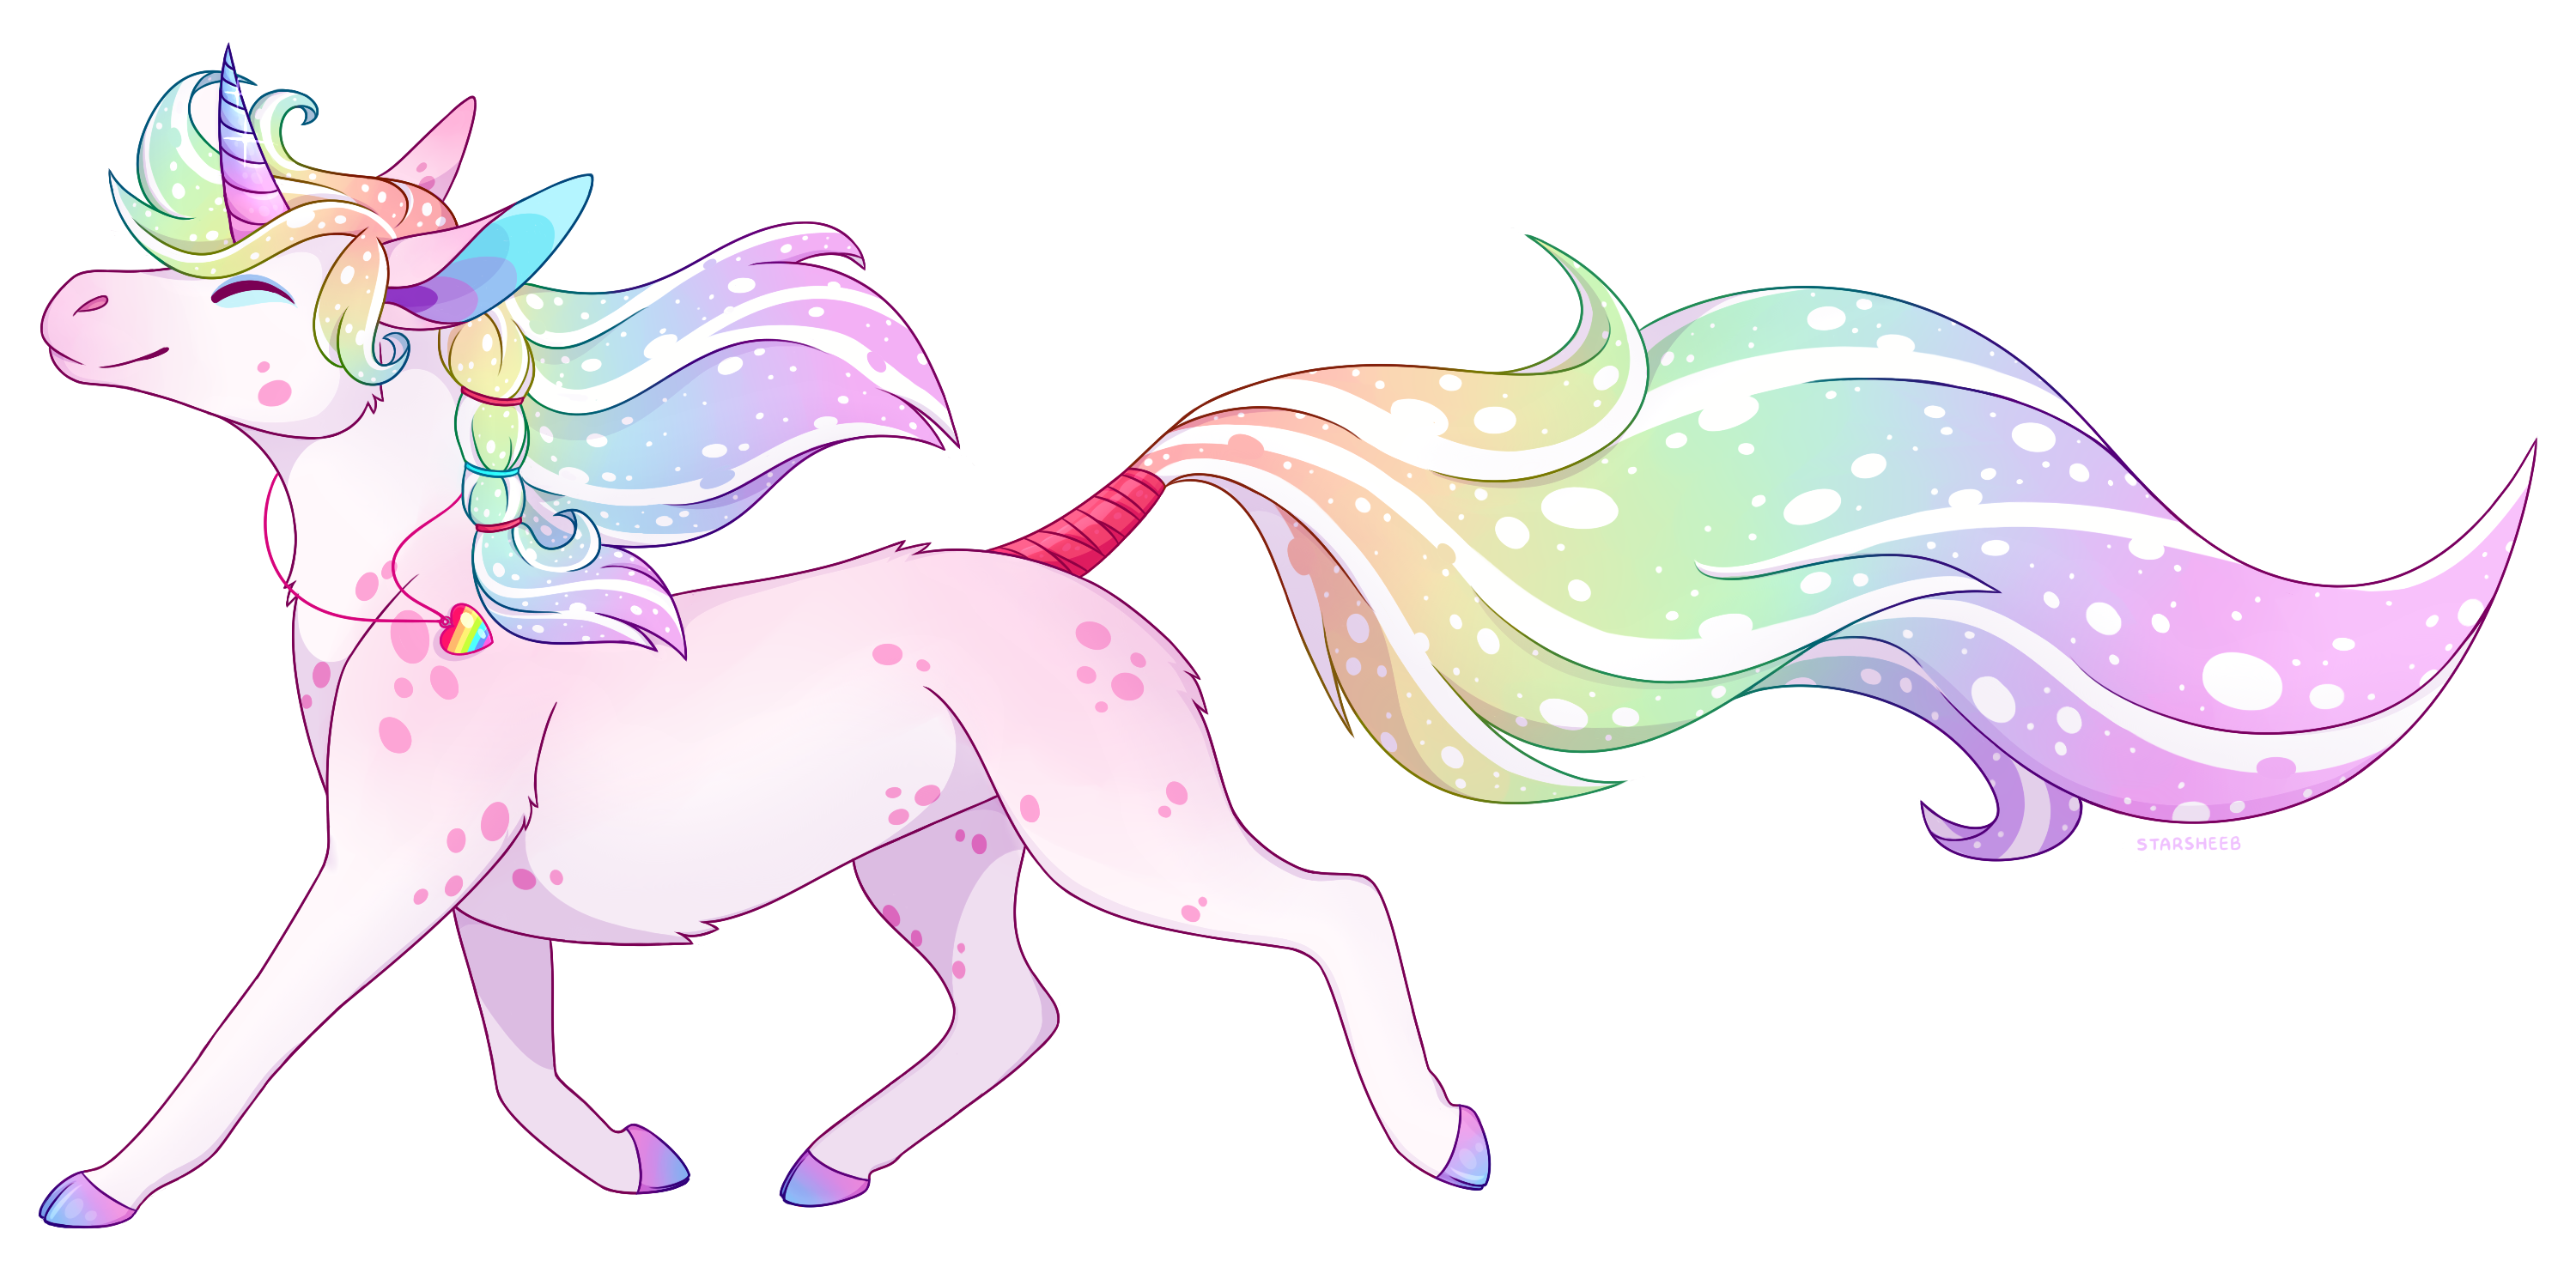 Unicorn Babe by StarSheeb